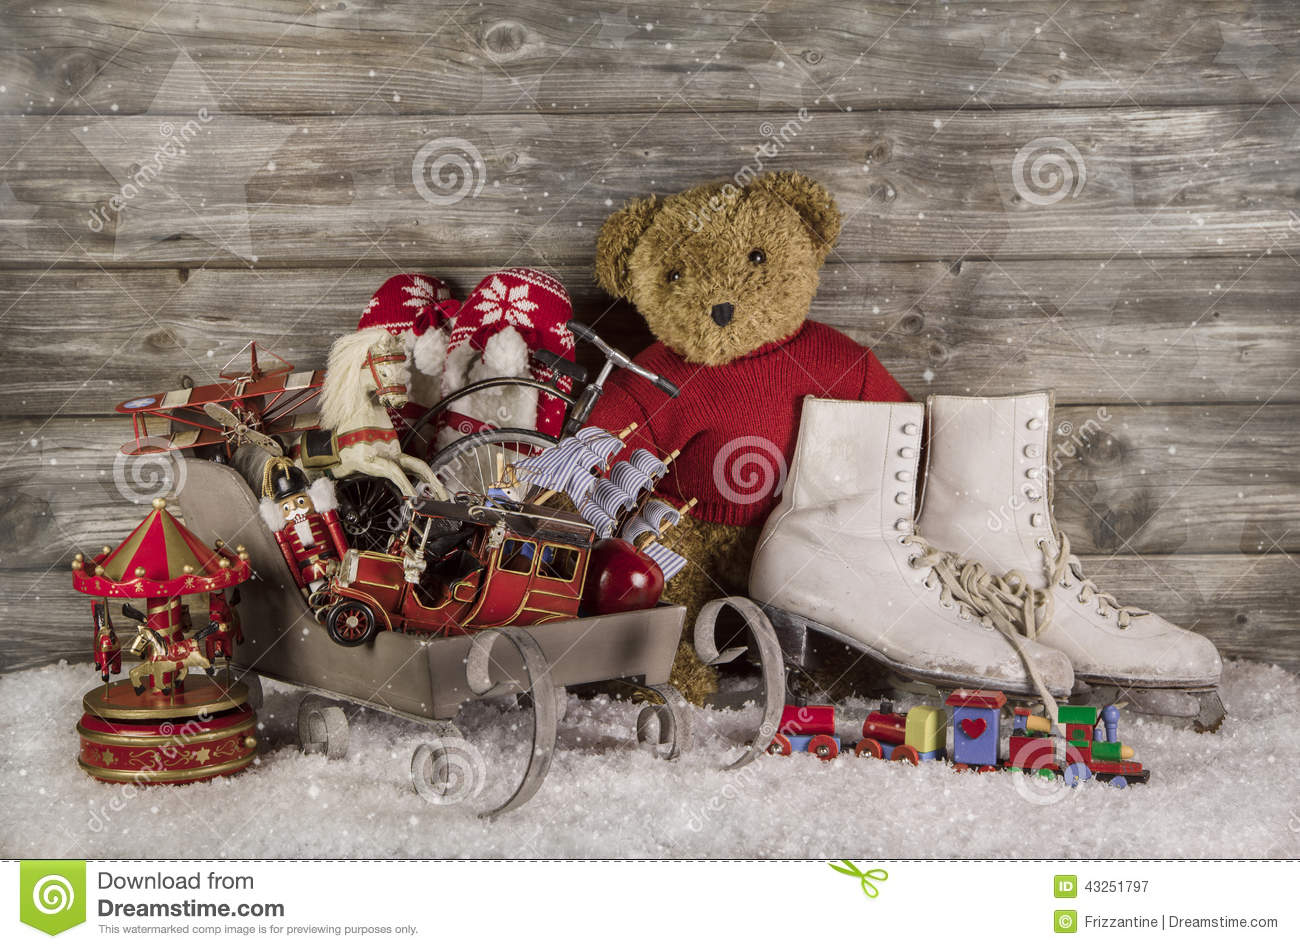 Christmas Toys For Christmas : Old children toys on wooden background for christmas